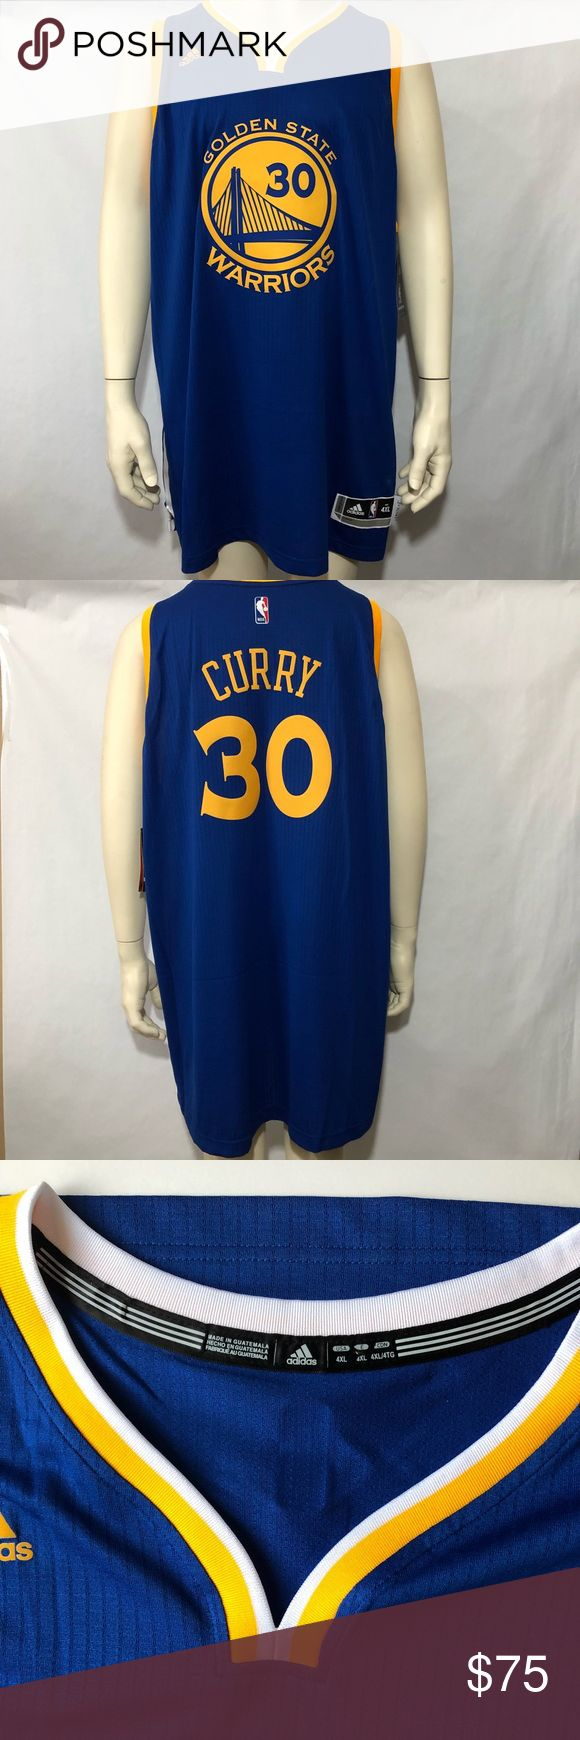 Adidas Swingman Golden State Warriors Steph Curry New With Tags See Picture For Details. Adidas Swingman Golden State Warriors Royal Player Steph Curry #30. adidas Shirts Tank Tops